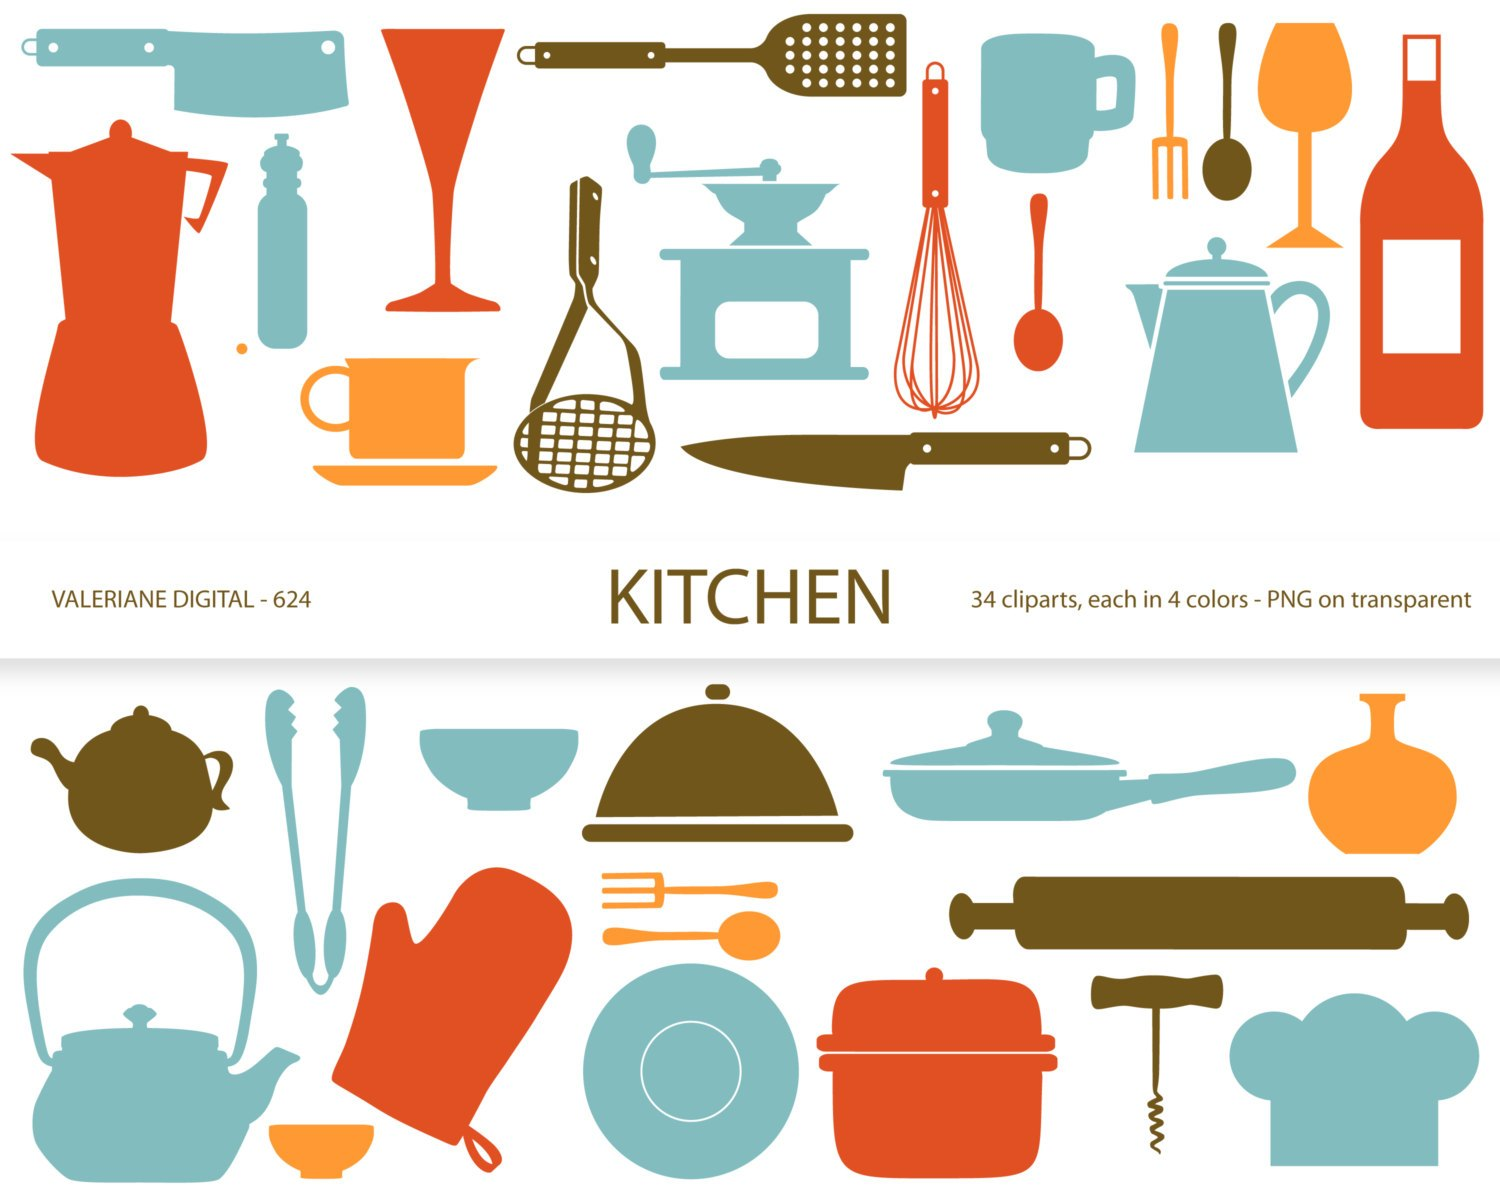 Free cooking utensils clipart graphic free library Kitchen utensils clipart free 5 » Clipart Portal graphic free library